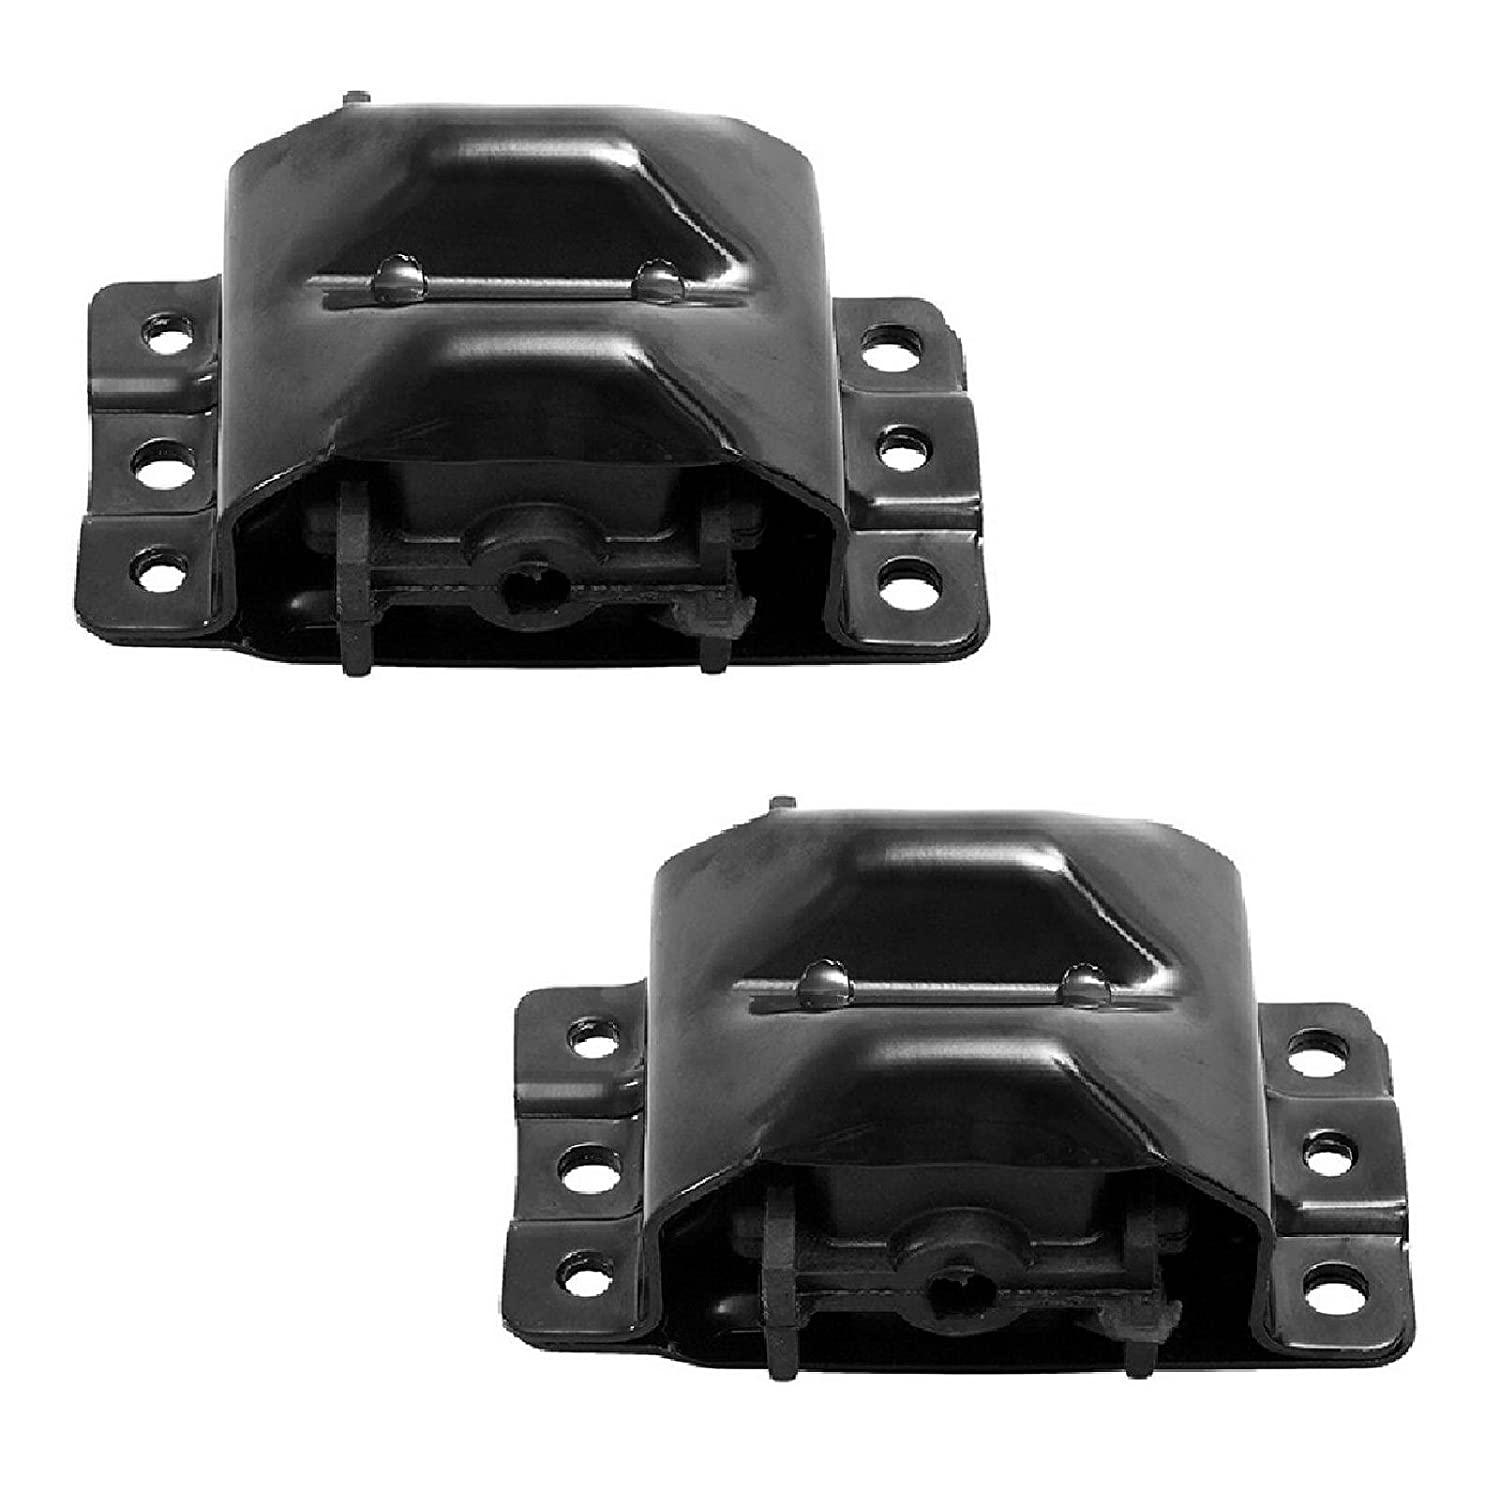 FIAMM Dual High /& Low Complete Horn 2001-2011 Crown Victoria